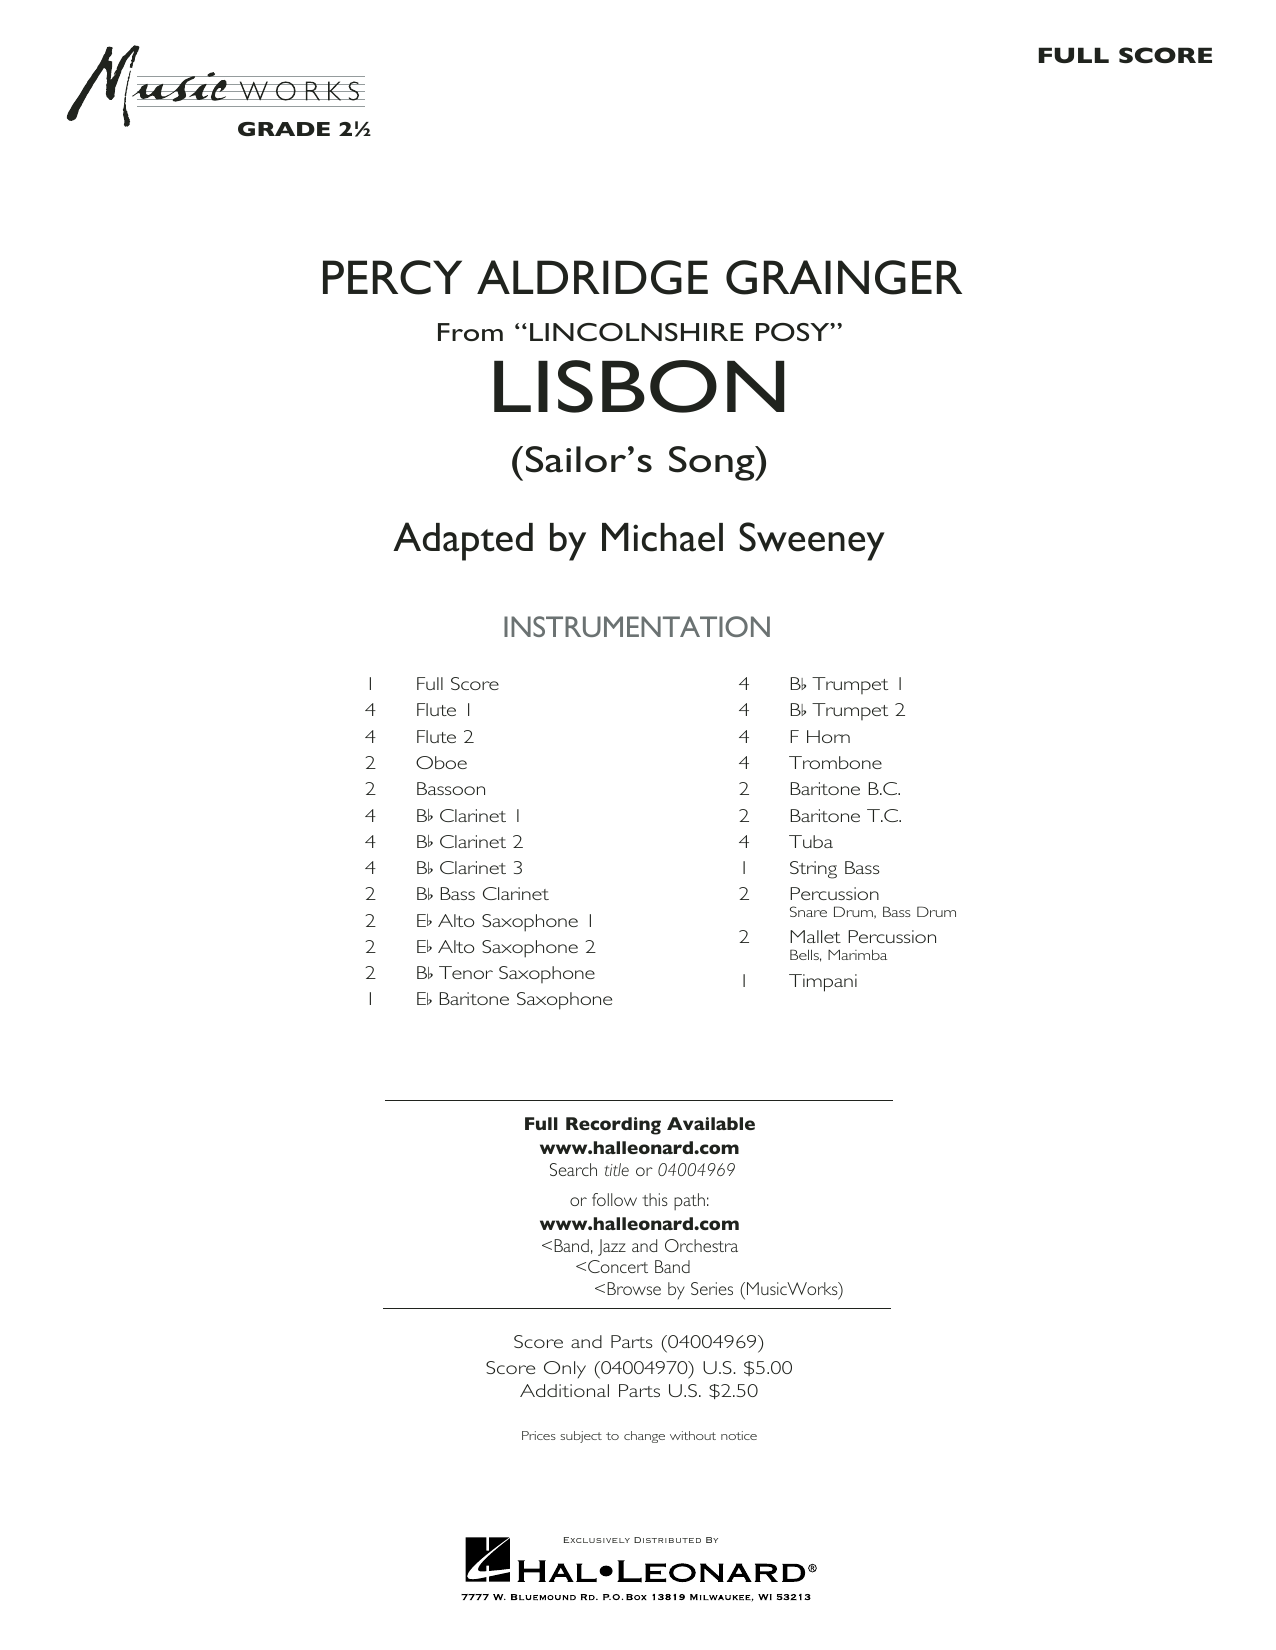 Lisbon (from Lincolnshire Posy) - Conductor Score (Full Score) Partition Digitale